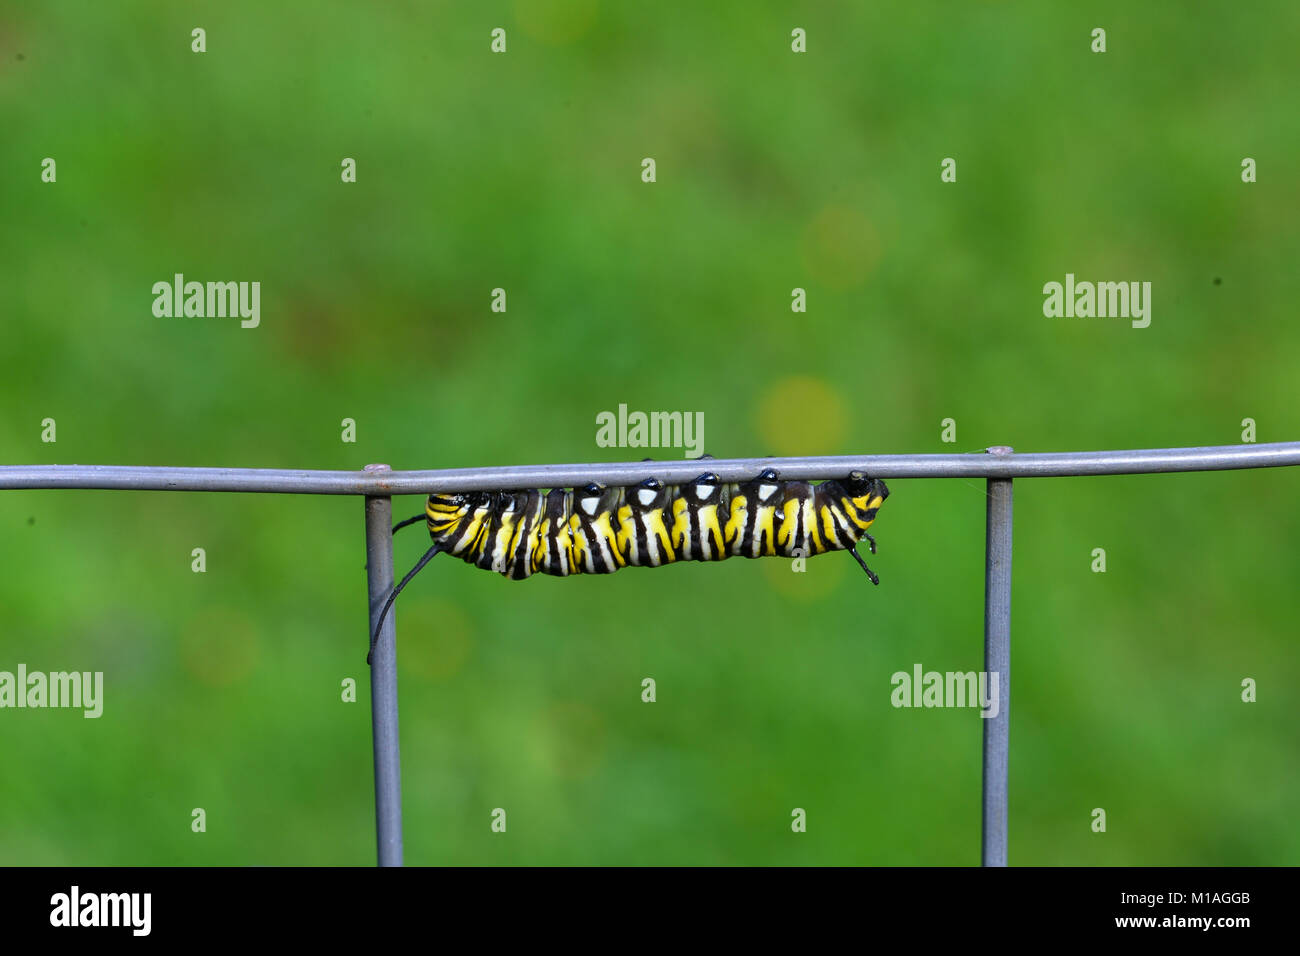 Caterpillar Hanging Stock Photos Images Fence 16 2 Butterfly New Monarch Danaus Plexippus On A Wire In The Yard